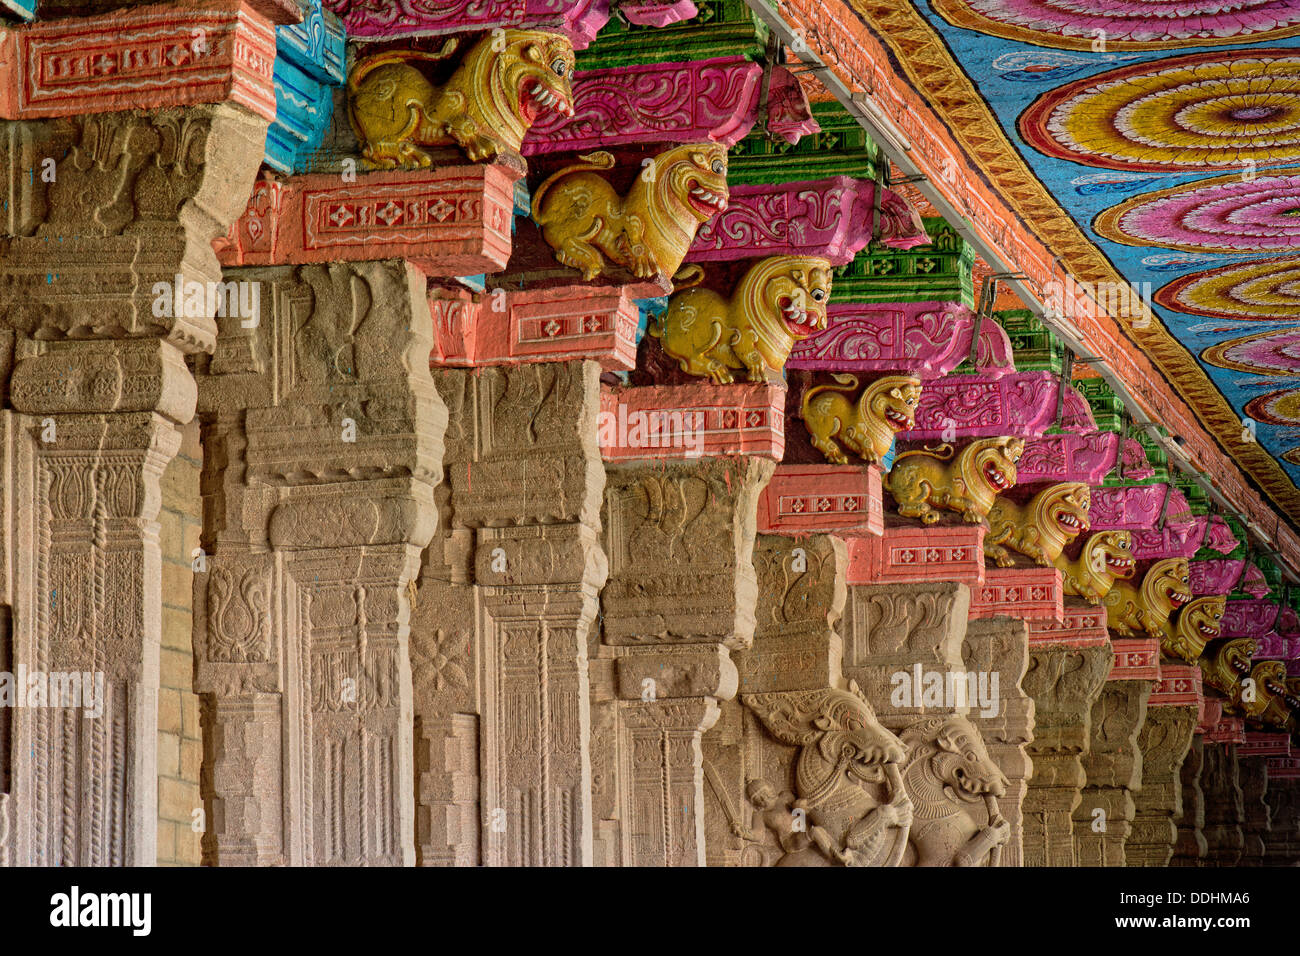 Hall with brightly painted pillars, mythical creatures, Meenakshi Amman Temple or Sri Meenakshi Sundareswarar Temple - Stock Image